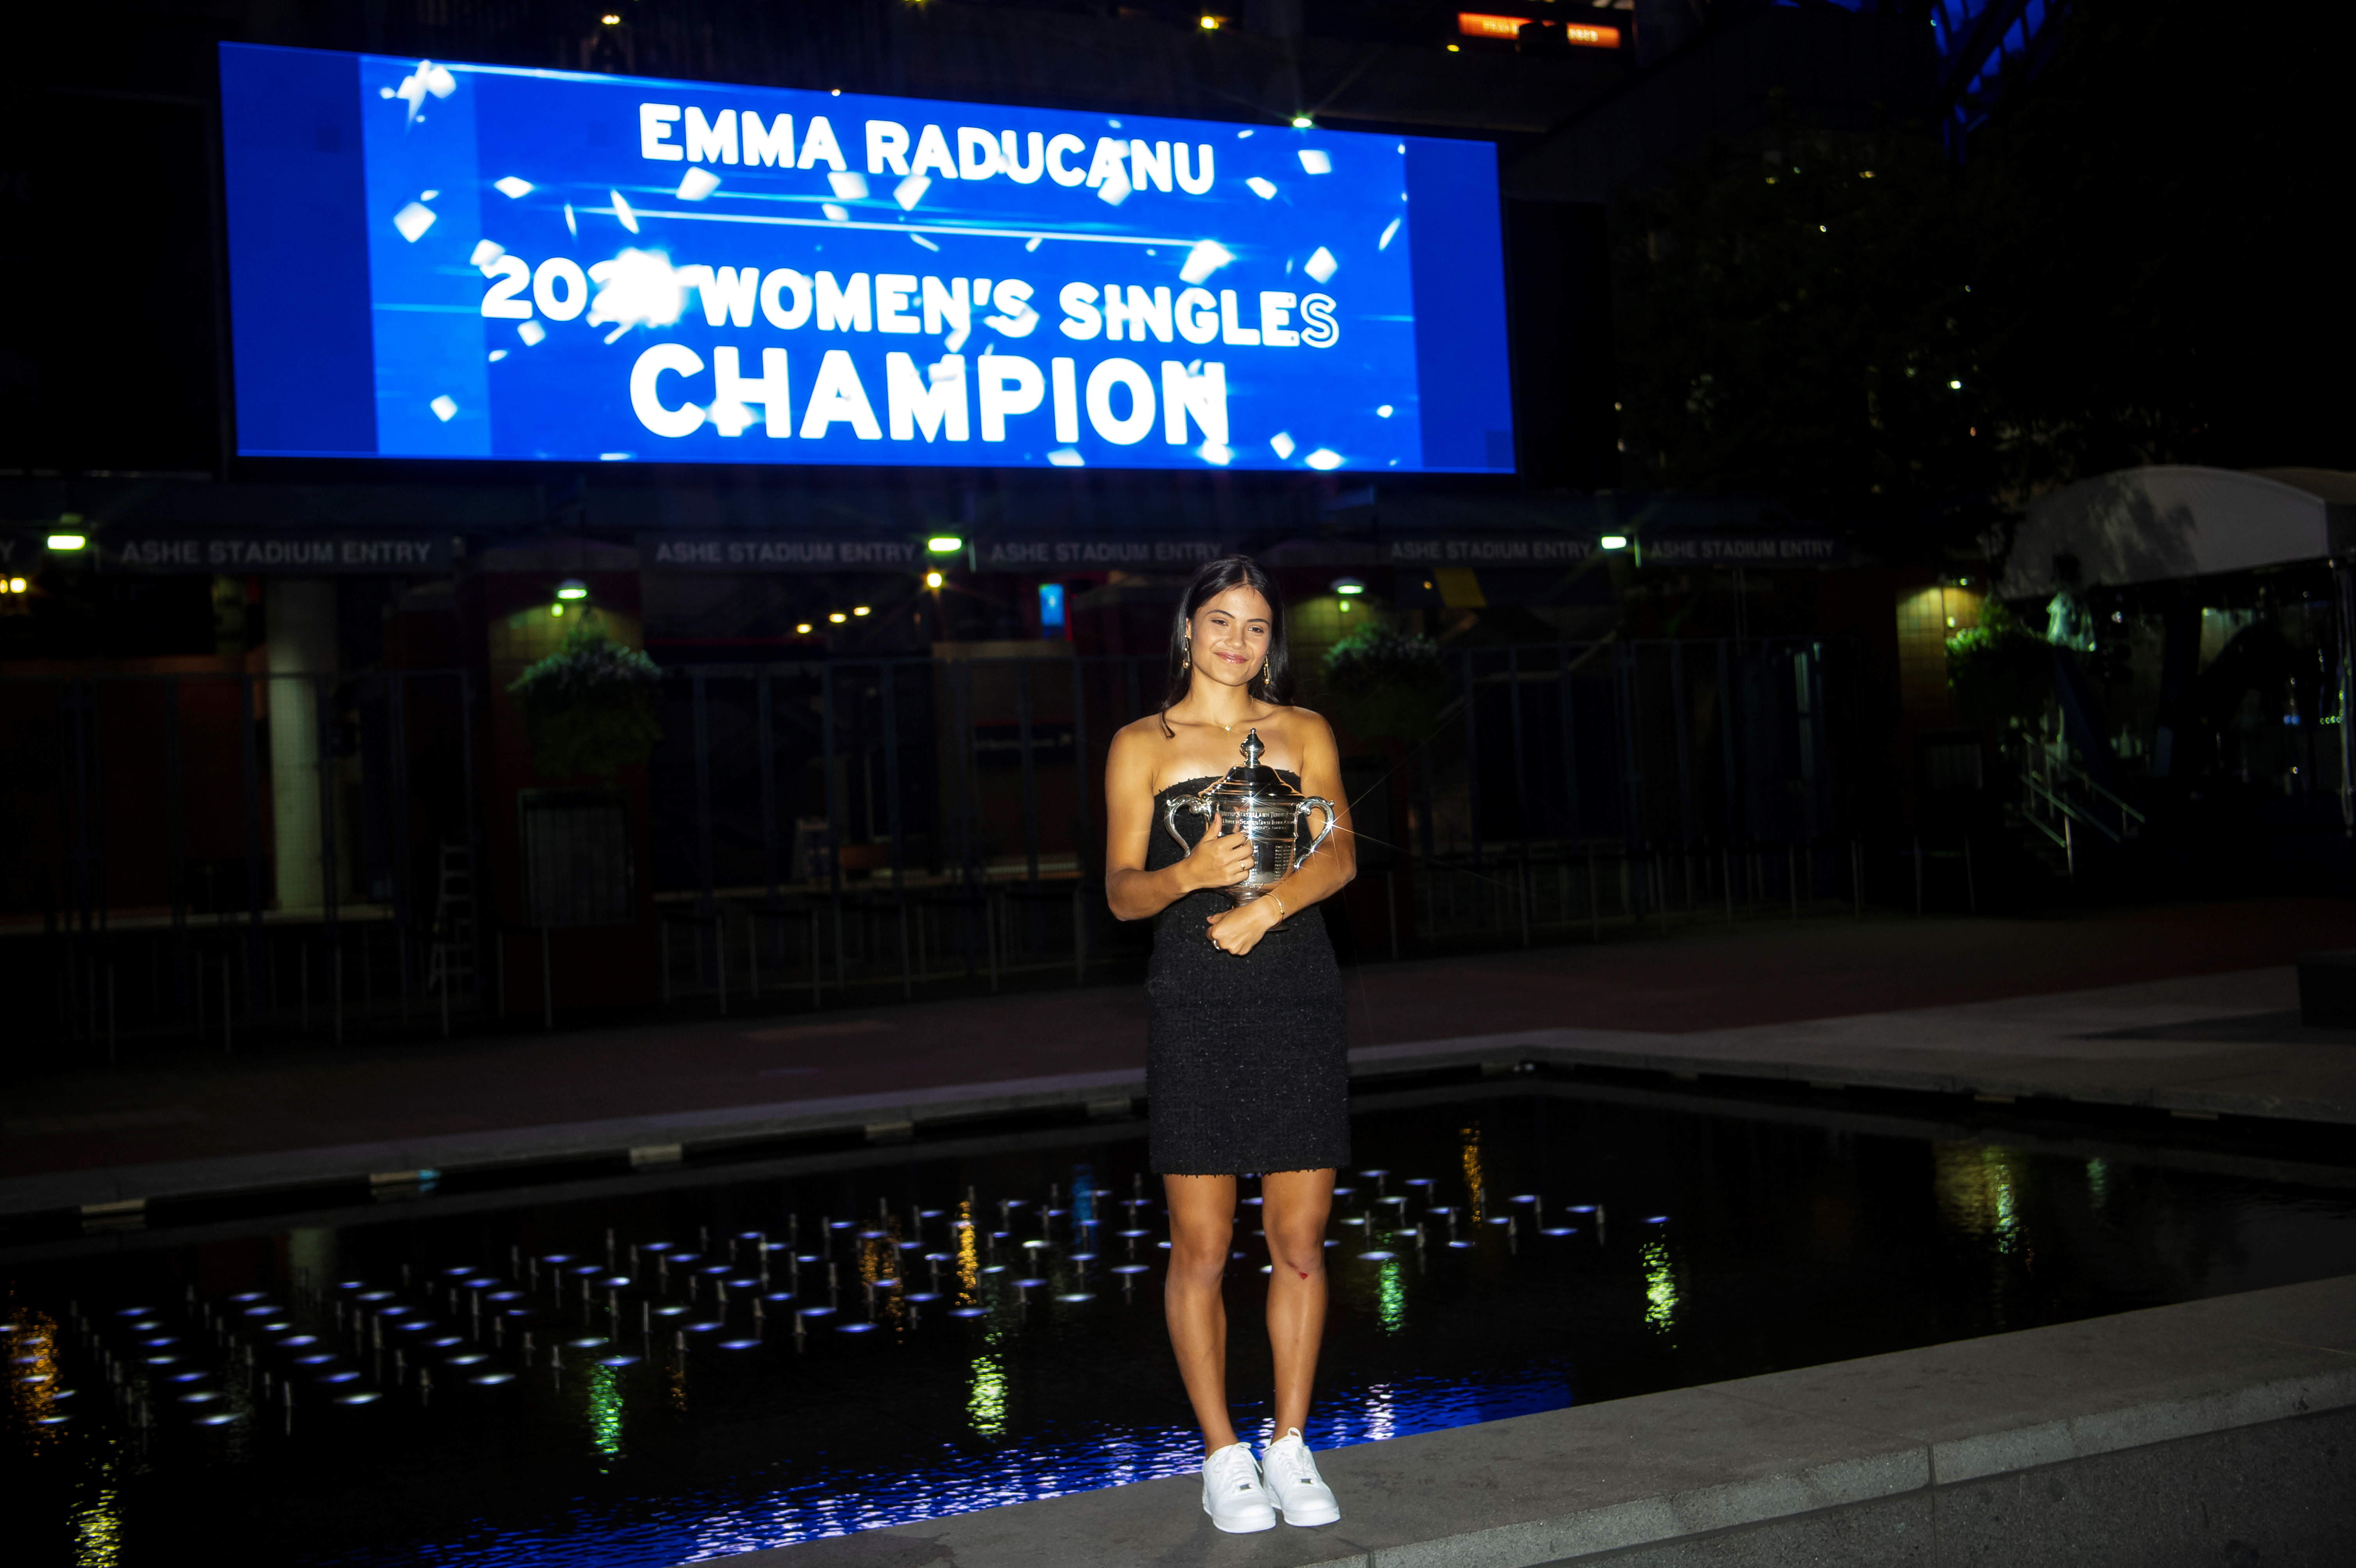 Britain's Emma Raducanu poses with the U.S. Open tennis championship trophy after her match against Leylah Fernandez of Canada in the women's singles final the 2021 U.S. Open tennis tournament at USTA Billie Jean King National Tennis Center in New York, U.S., September 11, 2021. Michael Frey/Handout via REUTERS